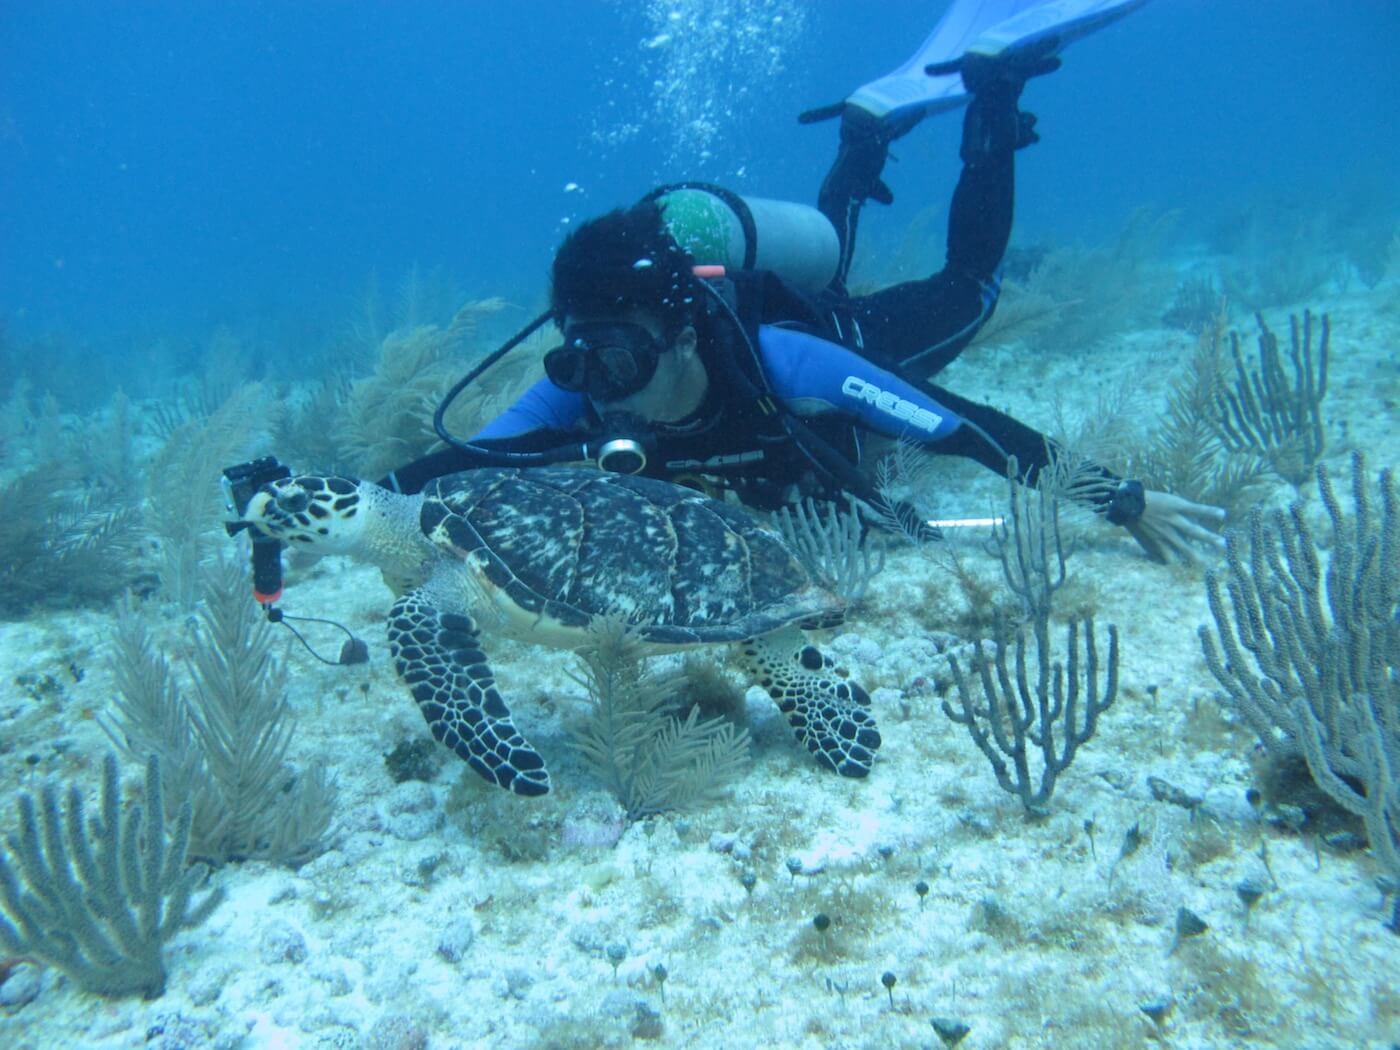 Sea-Turtle-Snorkeling-Scuba-Diving-Tours-Isla-Mujeres-Carey-Dive-Center-11